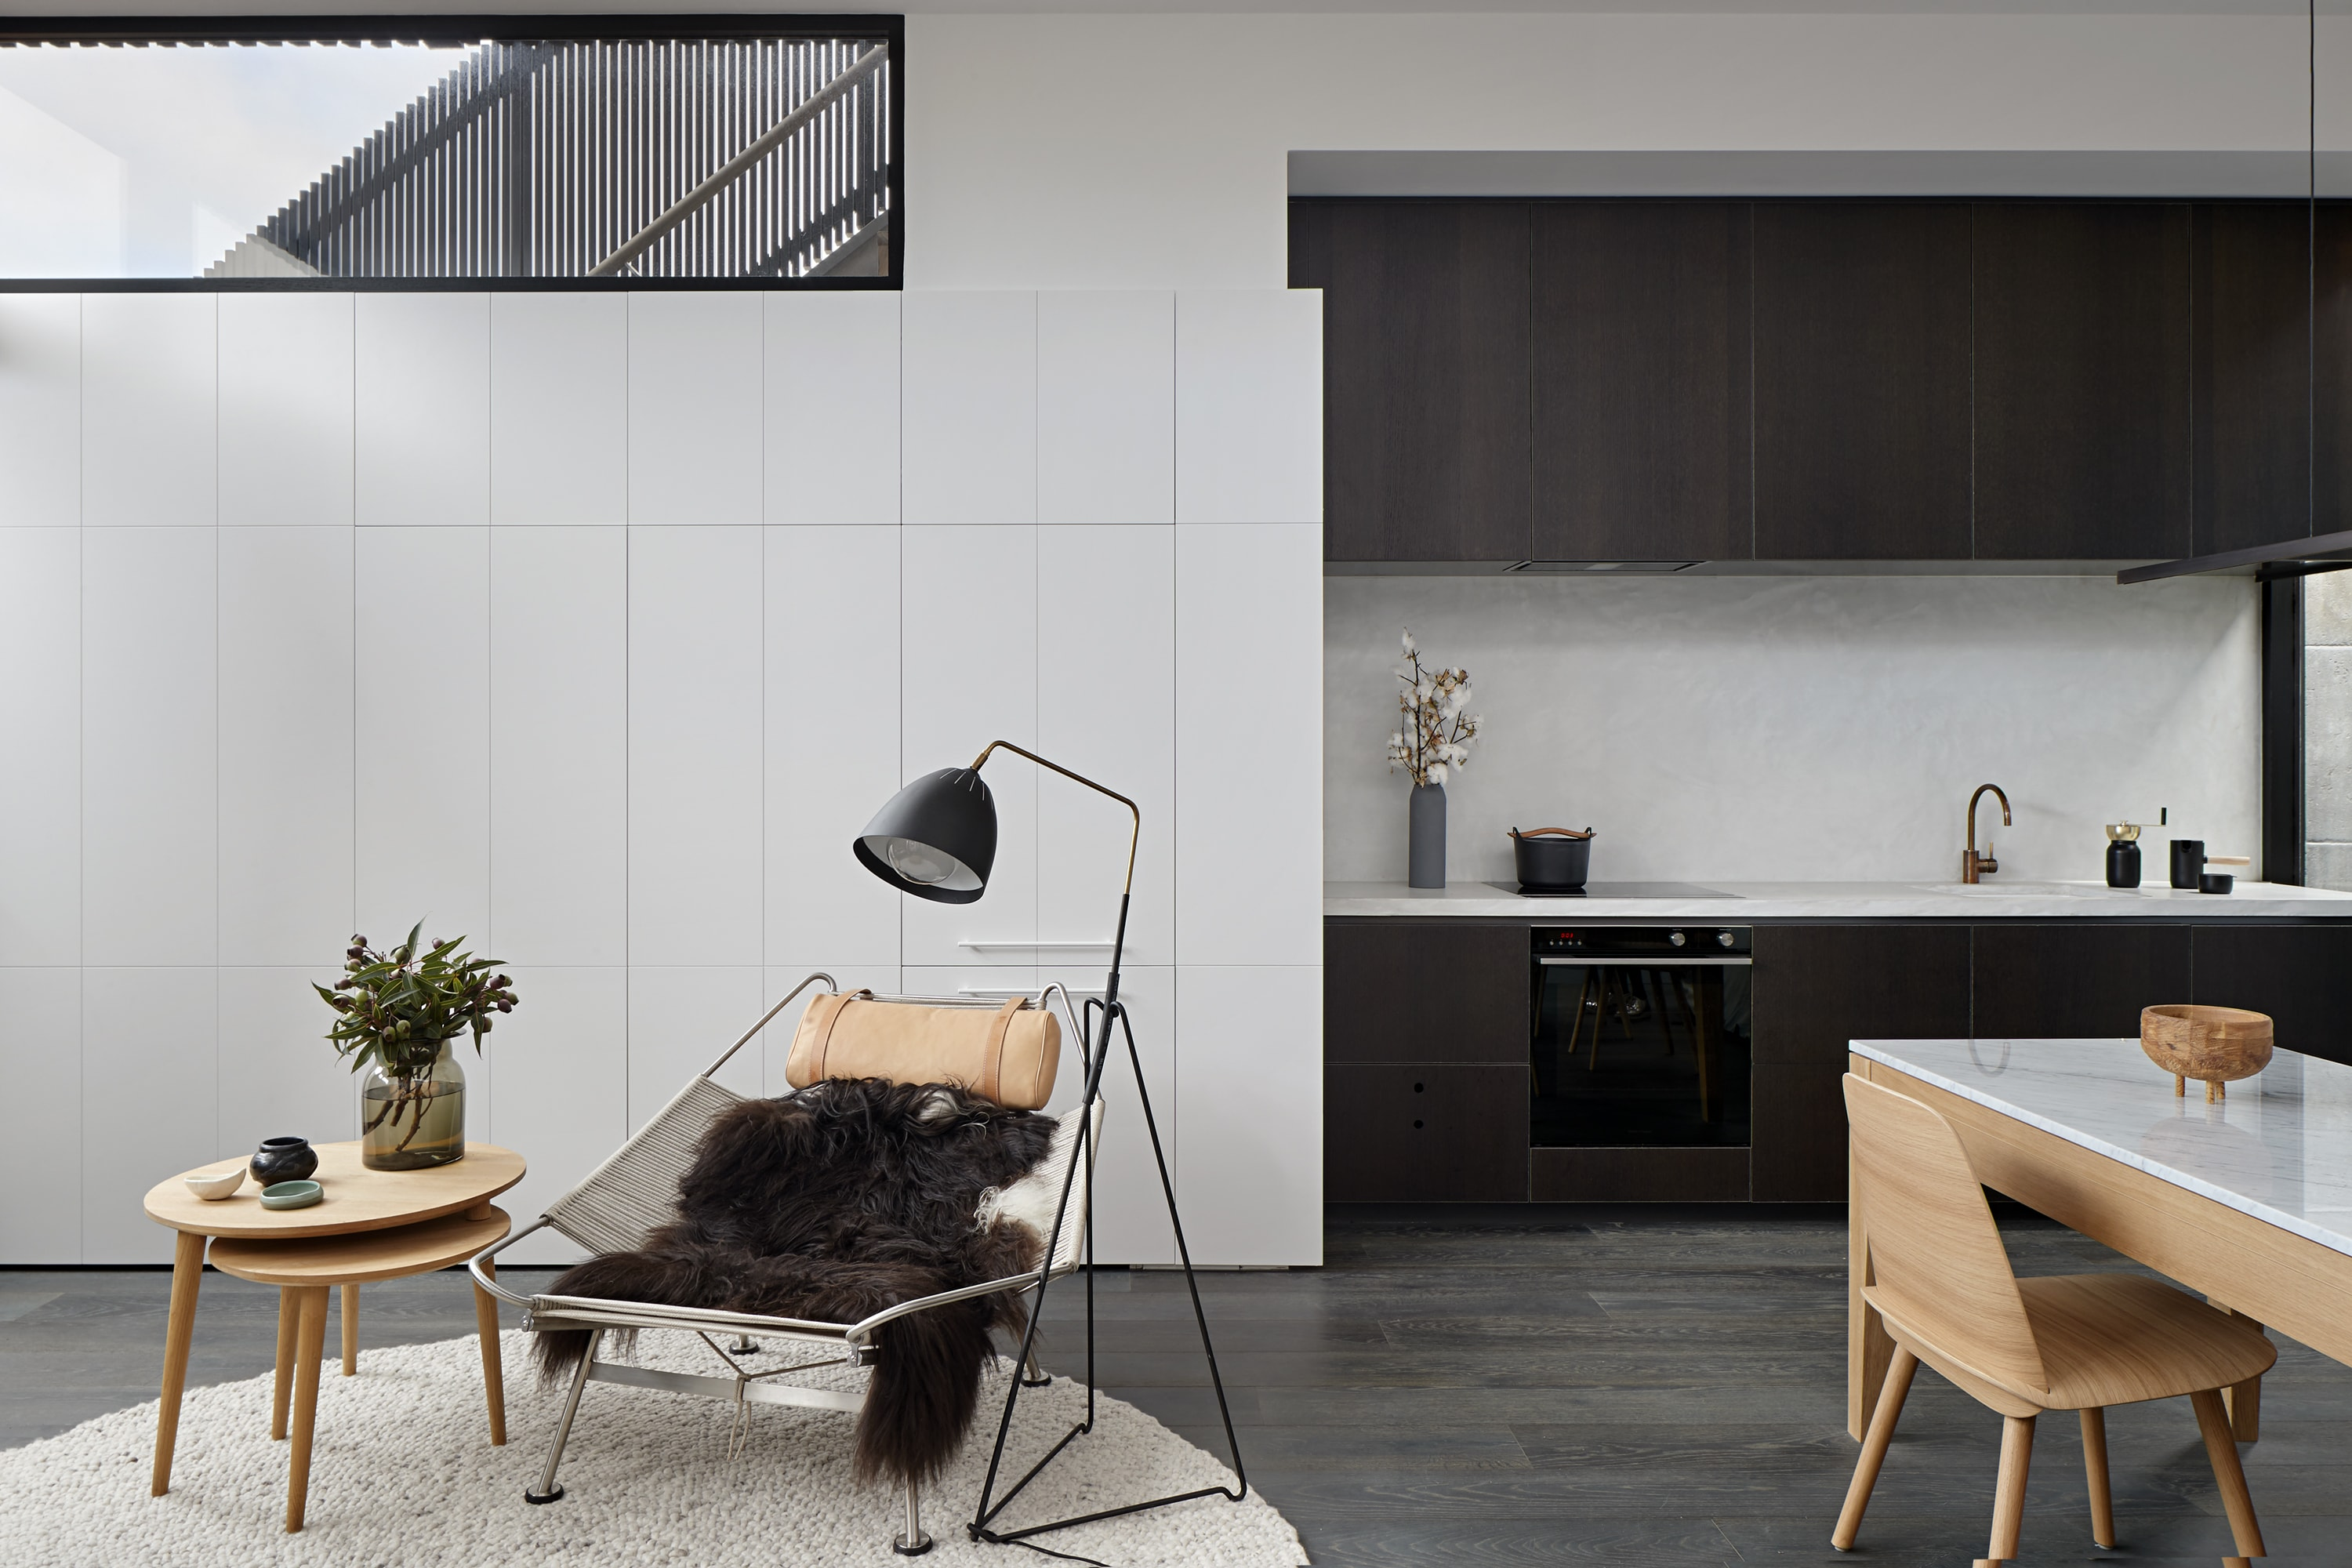 The Pocket House By Whiting Architects The Fisher & Paykel Series Melbourne, Victoria, Australiaf&p Whiting Littleogrady ©smg 8776 Min